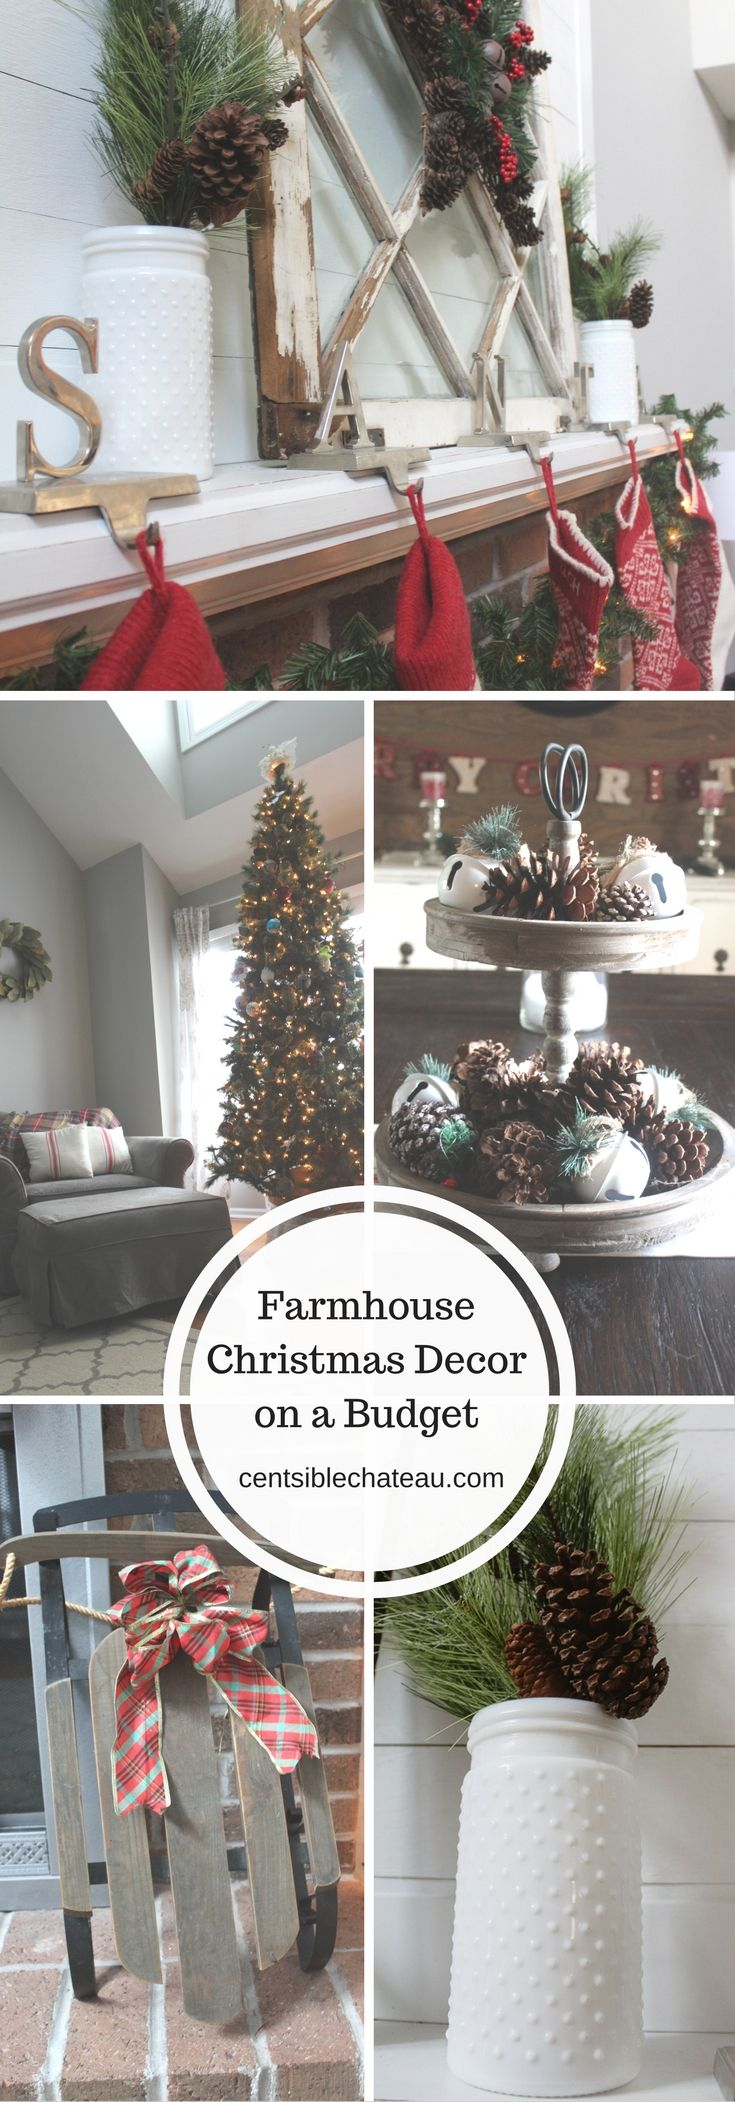 Farmhouse Christmas| Christmas Decor| Cheap Christmas Ideas| Christmas Decorations| Fixer Upper Style